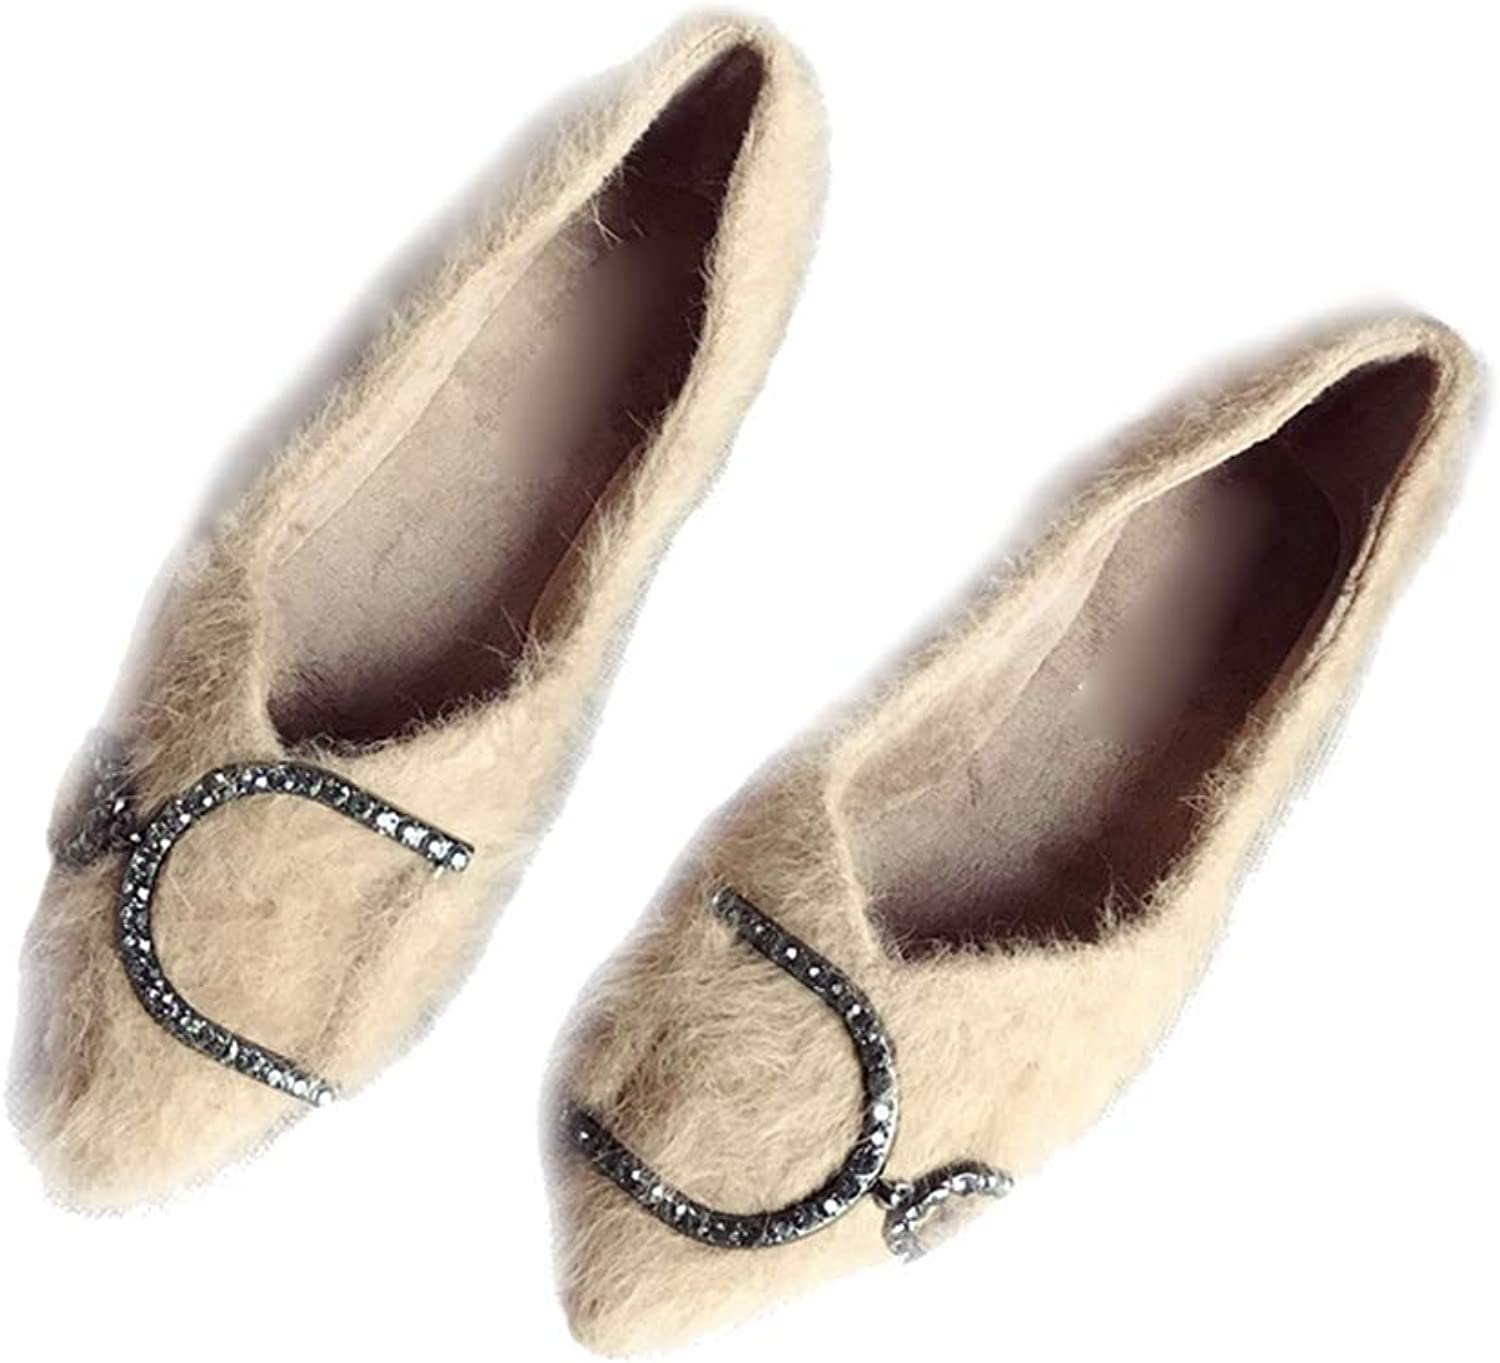 August Jim Womens Winter Flats shoes,Pointy Toe Ballet Slip On Faux Suede Fuzzy Loafers